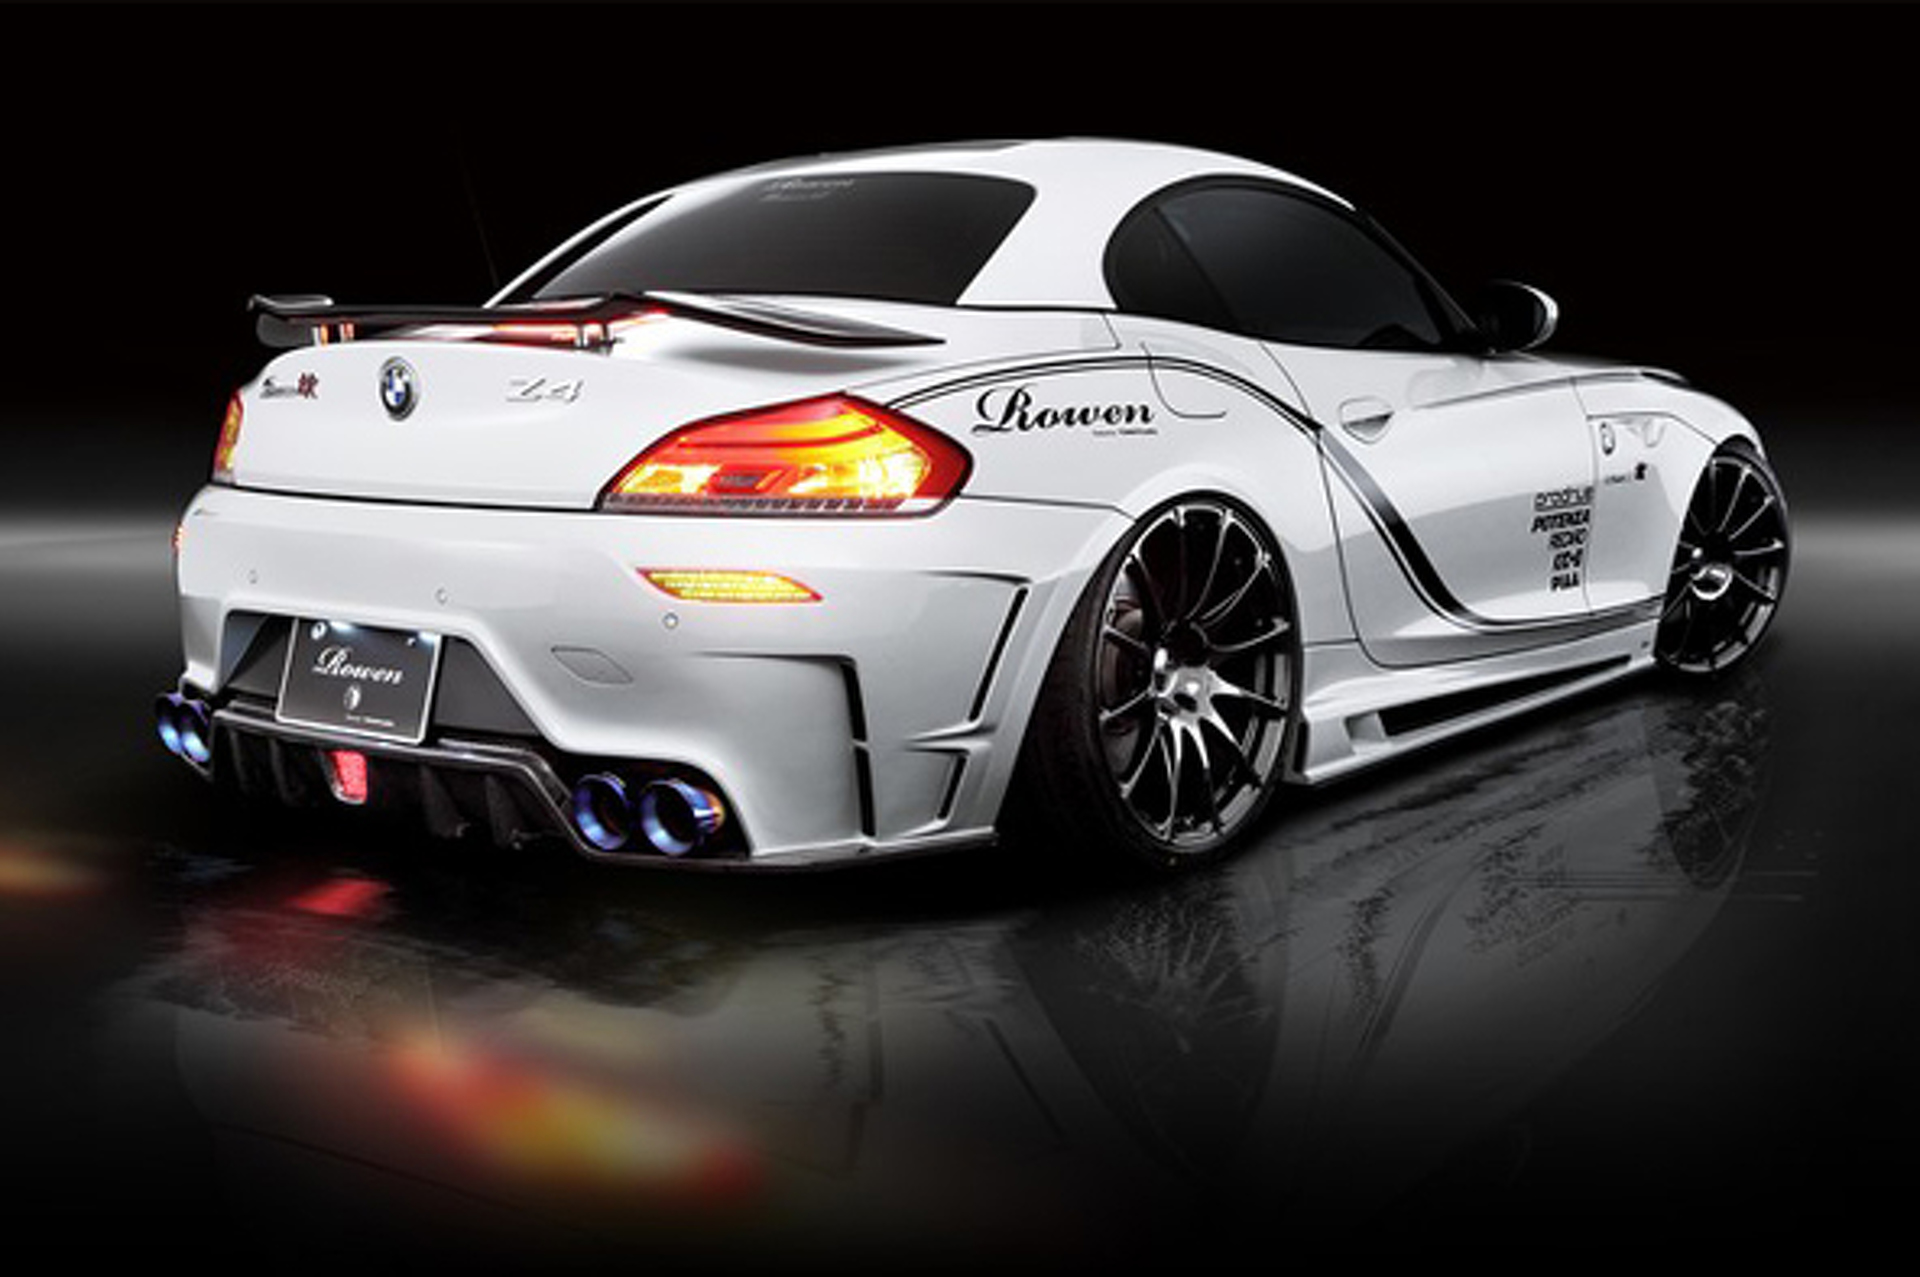 Unveiled: BMW Z4 White Wolf by Rowen Japan